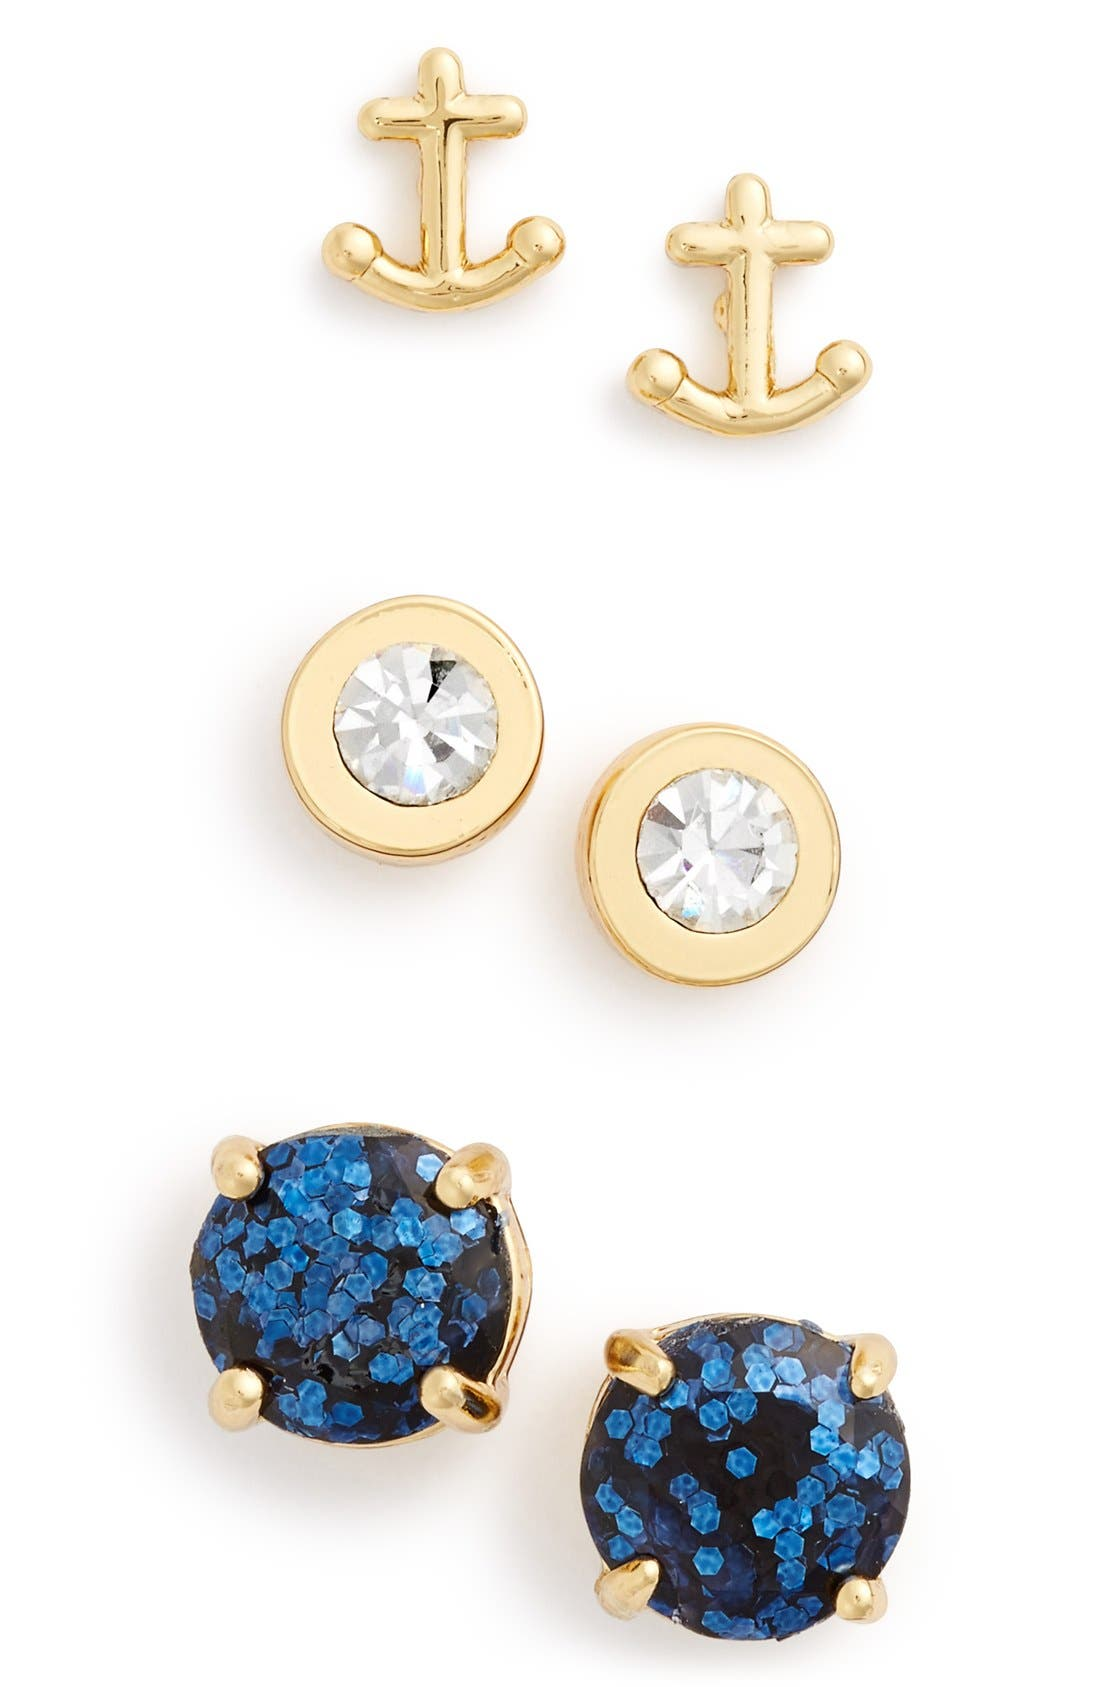 Main Image - kate spade new york 'navy glitter' anchor & round stud earrings (Set of 3)